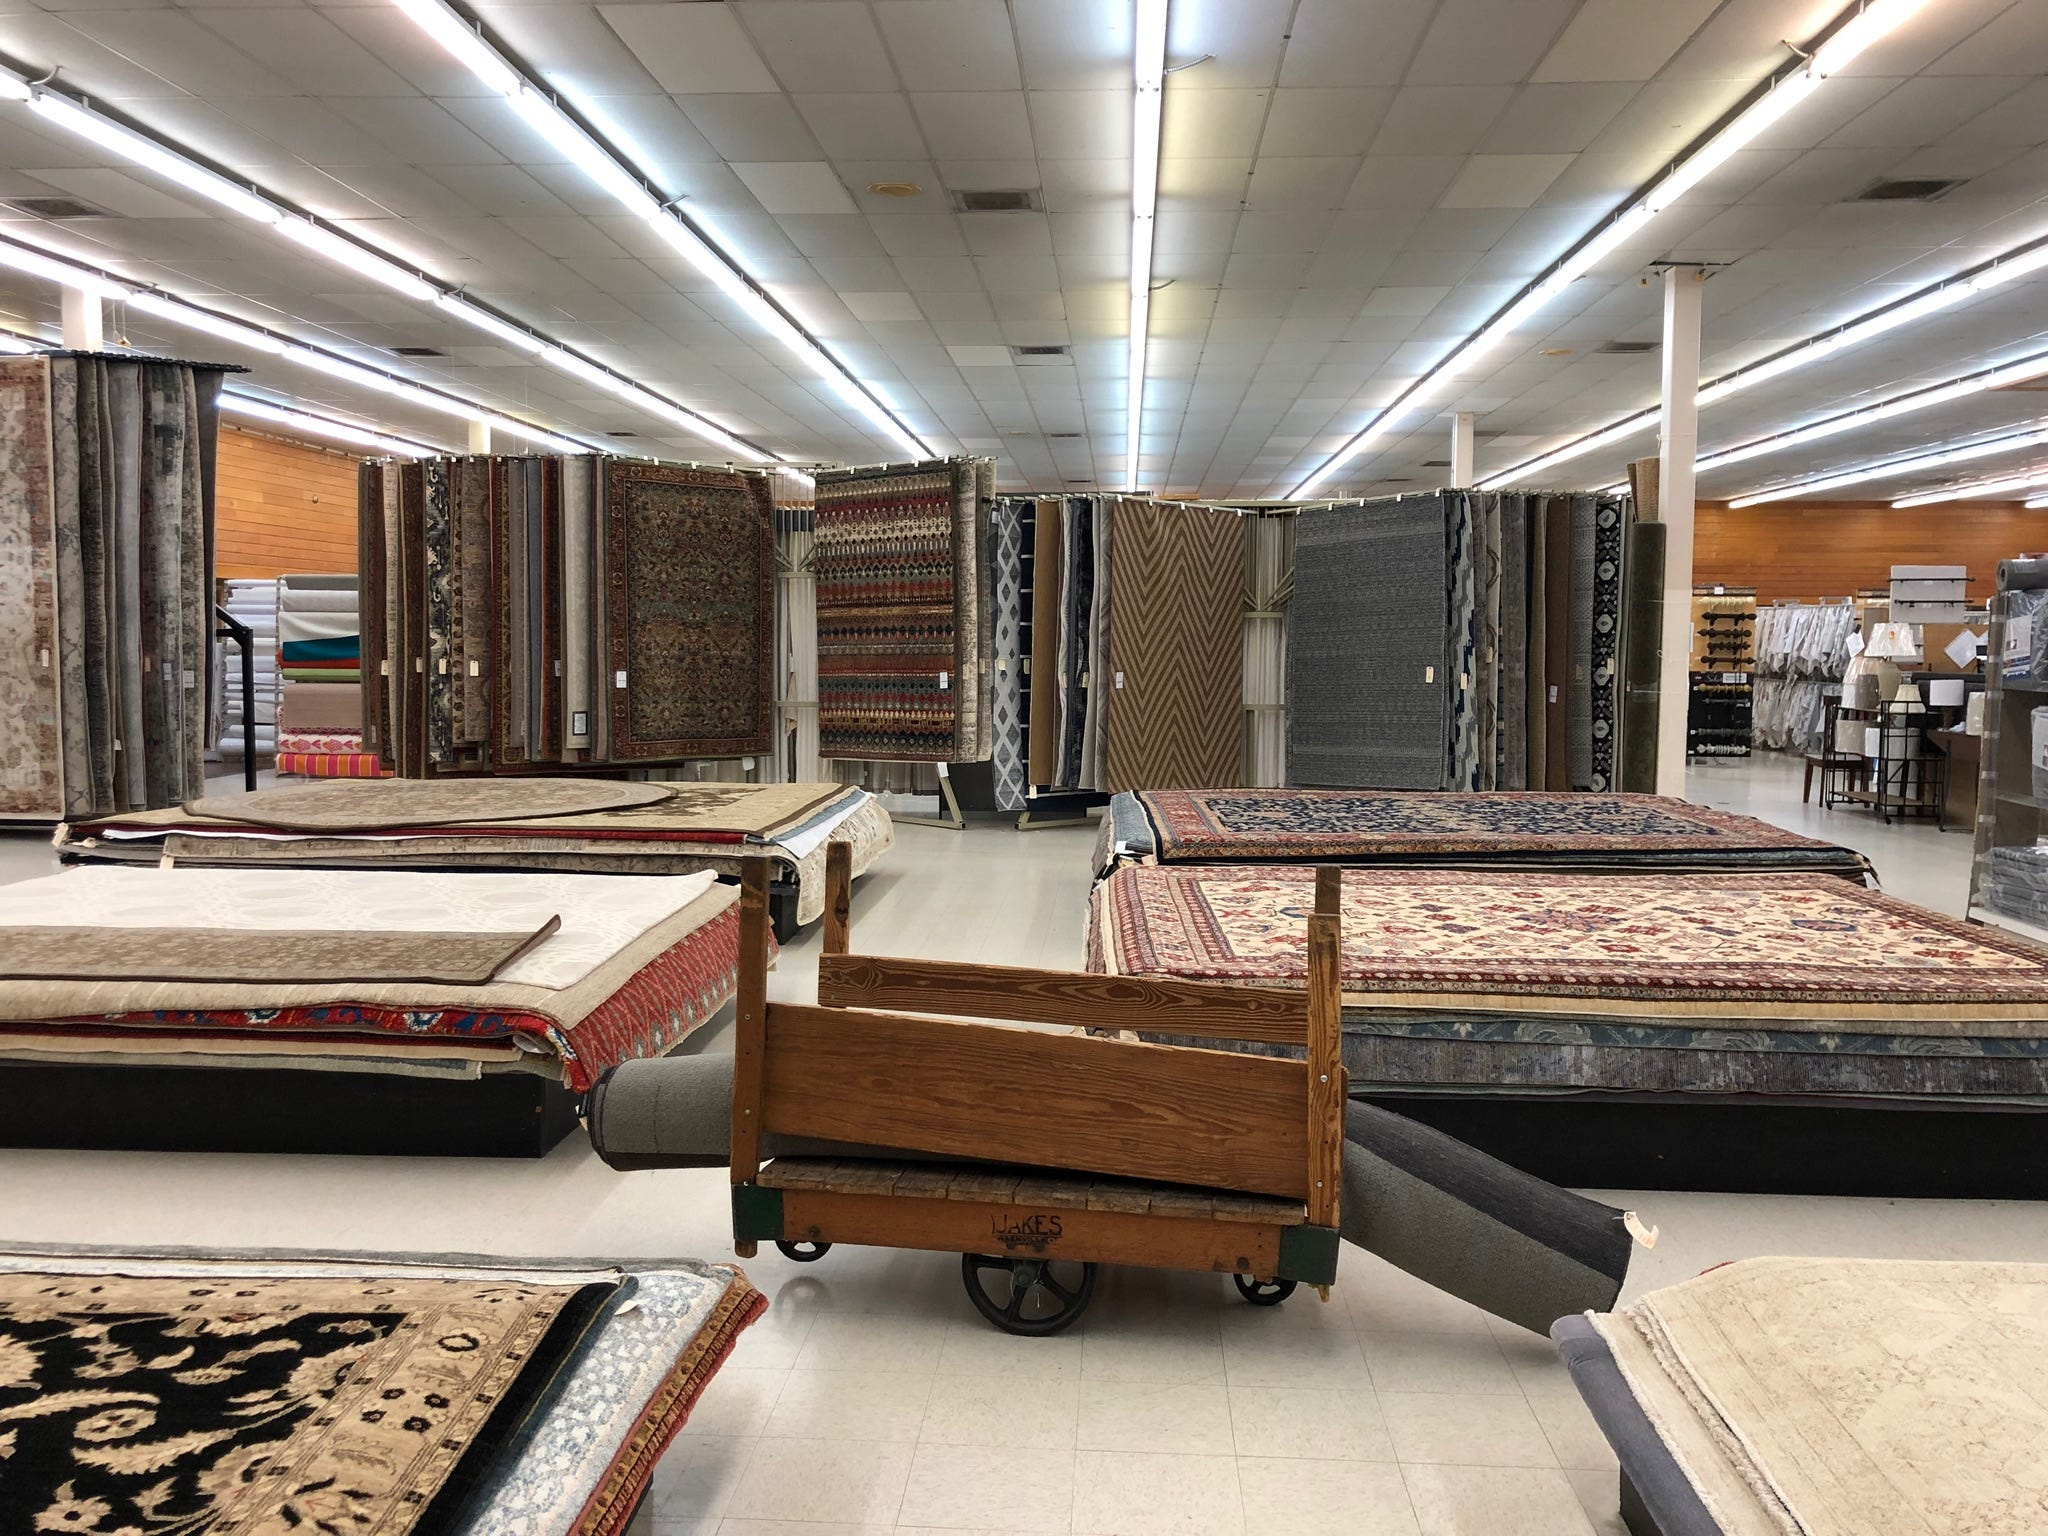 Brentwood Interiors Fabric Store Closing After 68 Years In Business